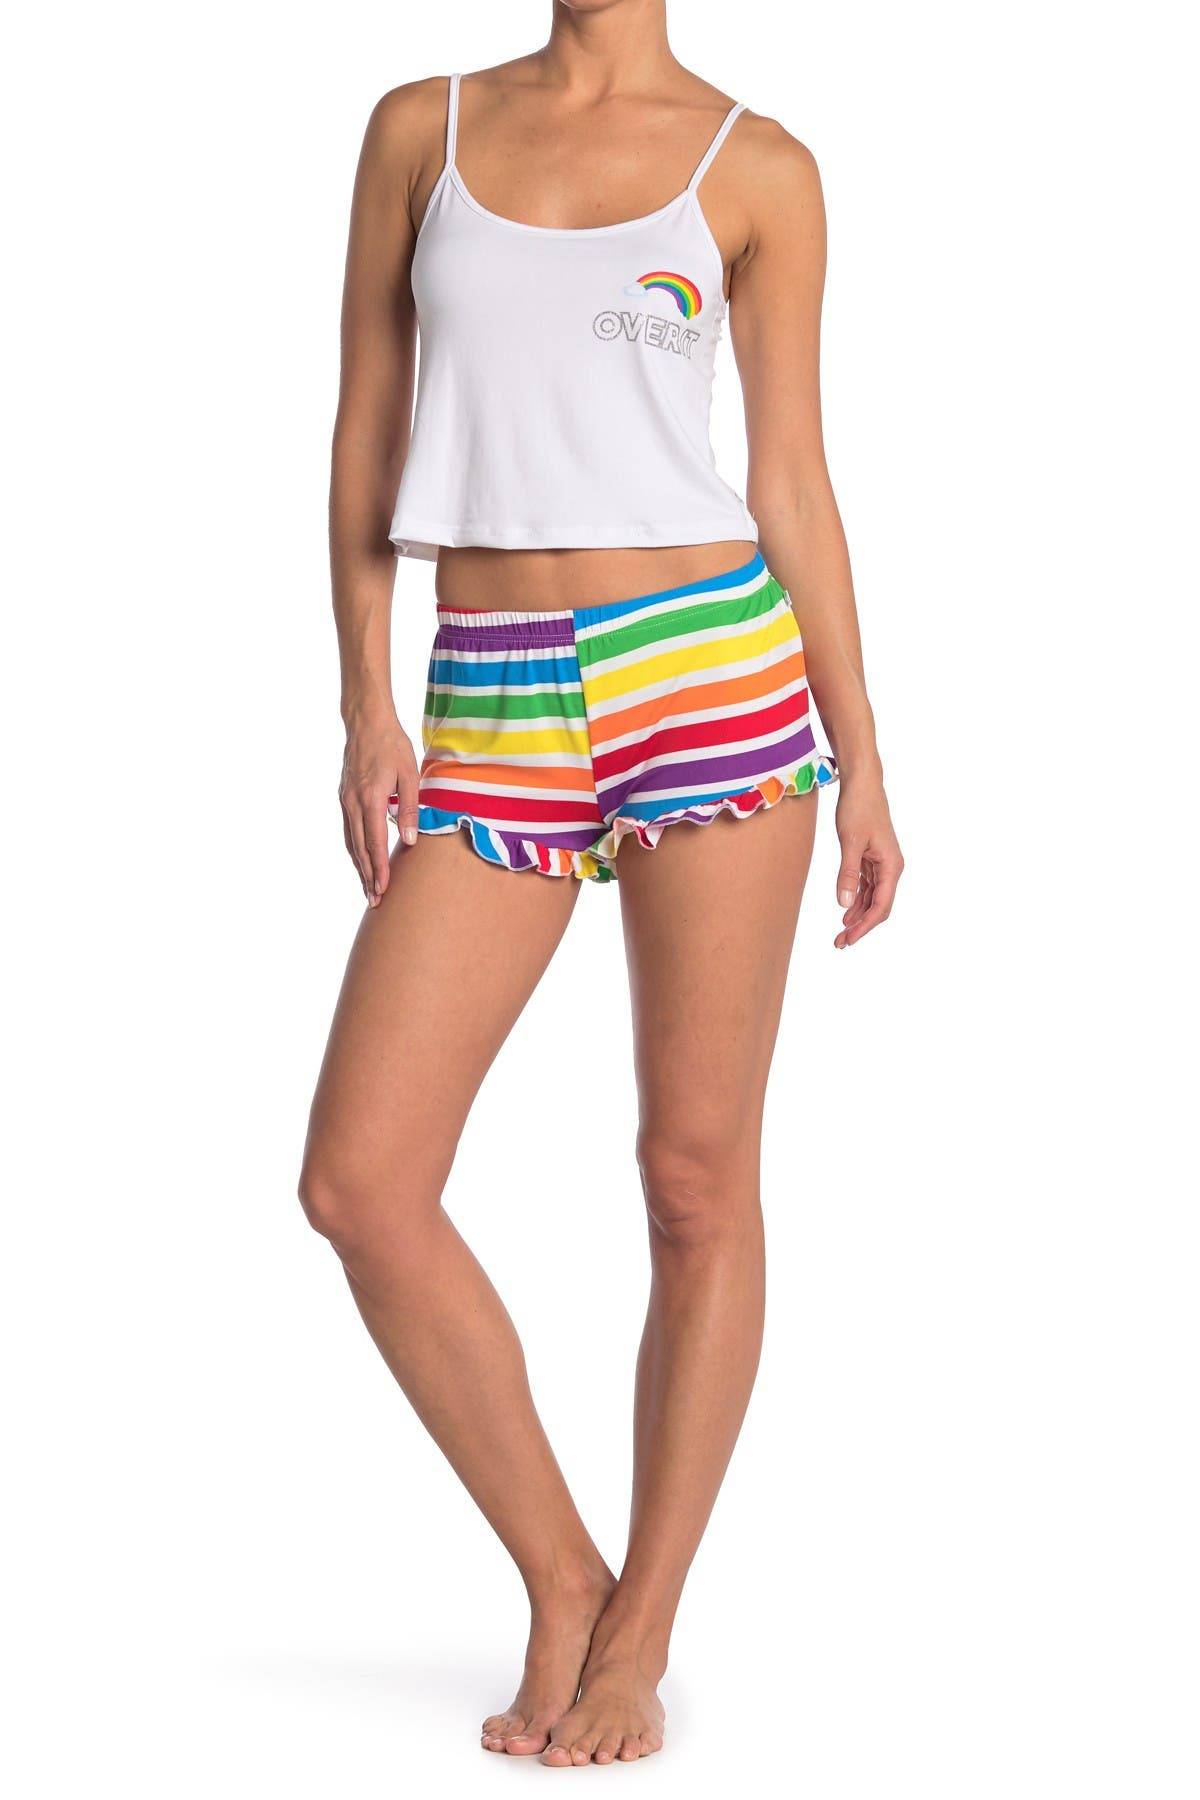 Image of FRENCH AFFAIR Over It Cami Top & Striped Shorts Pajama Set